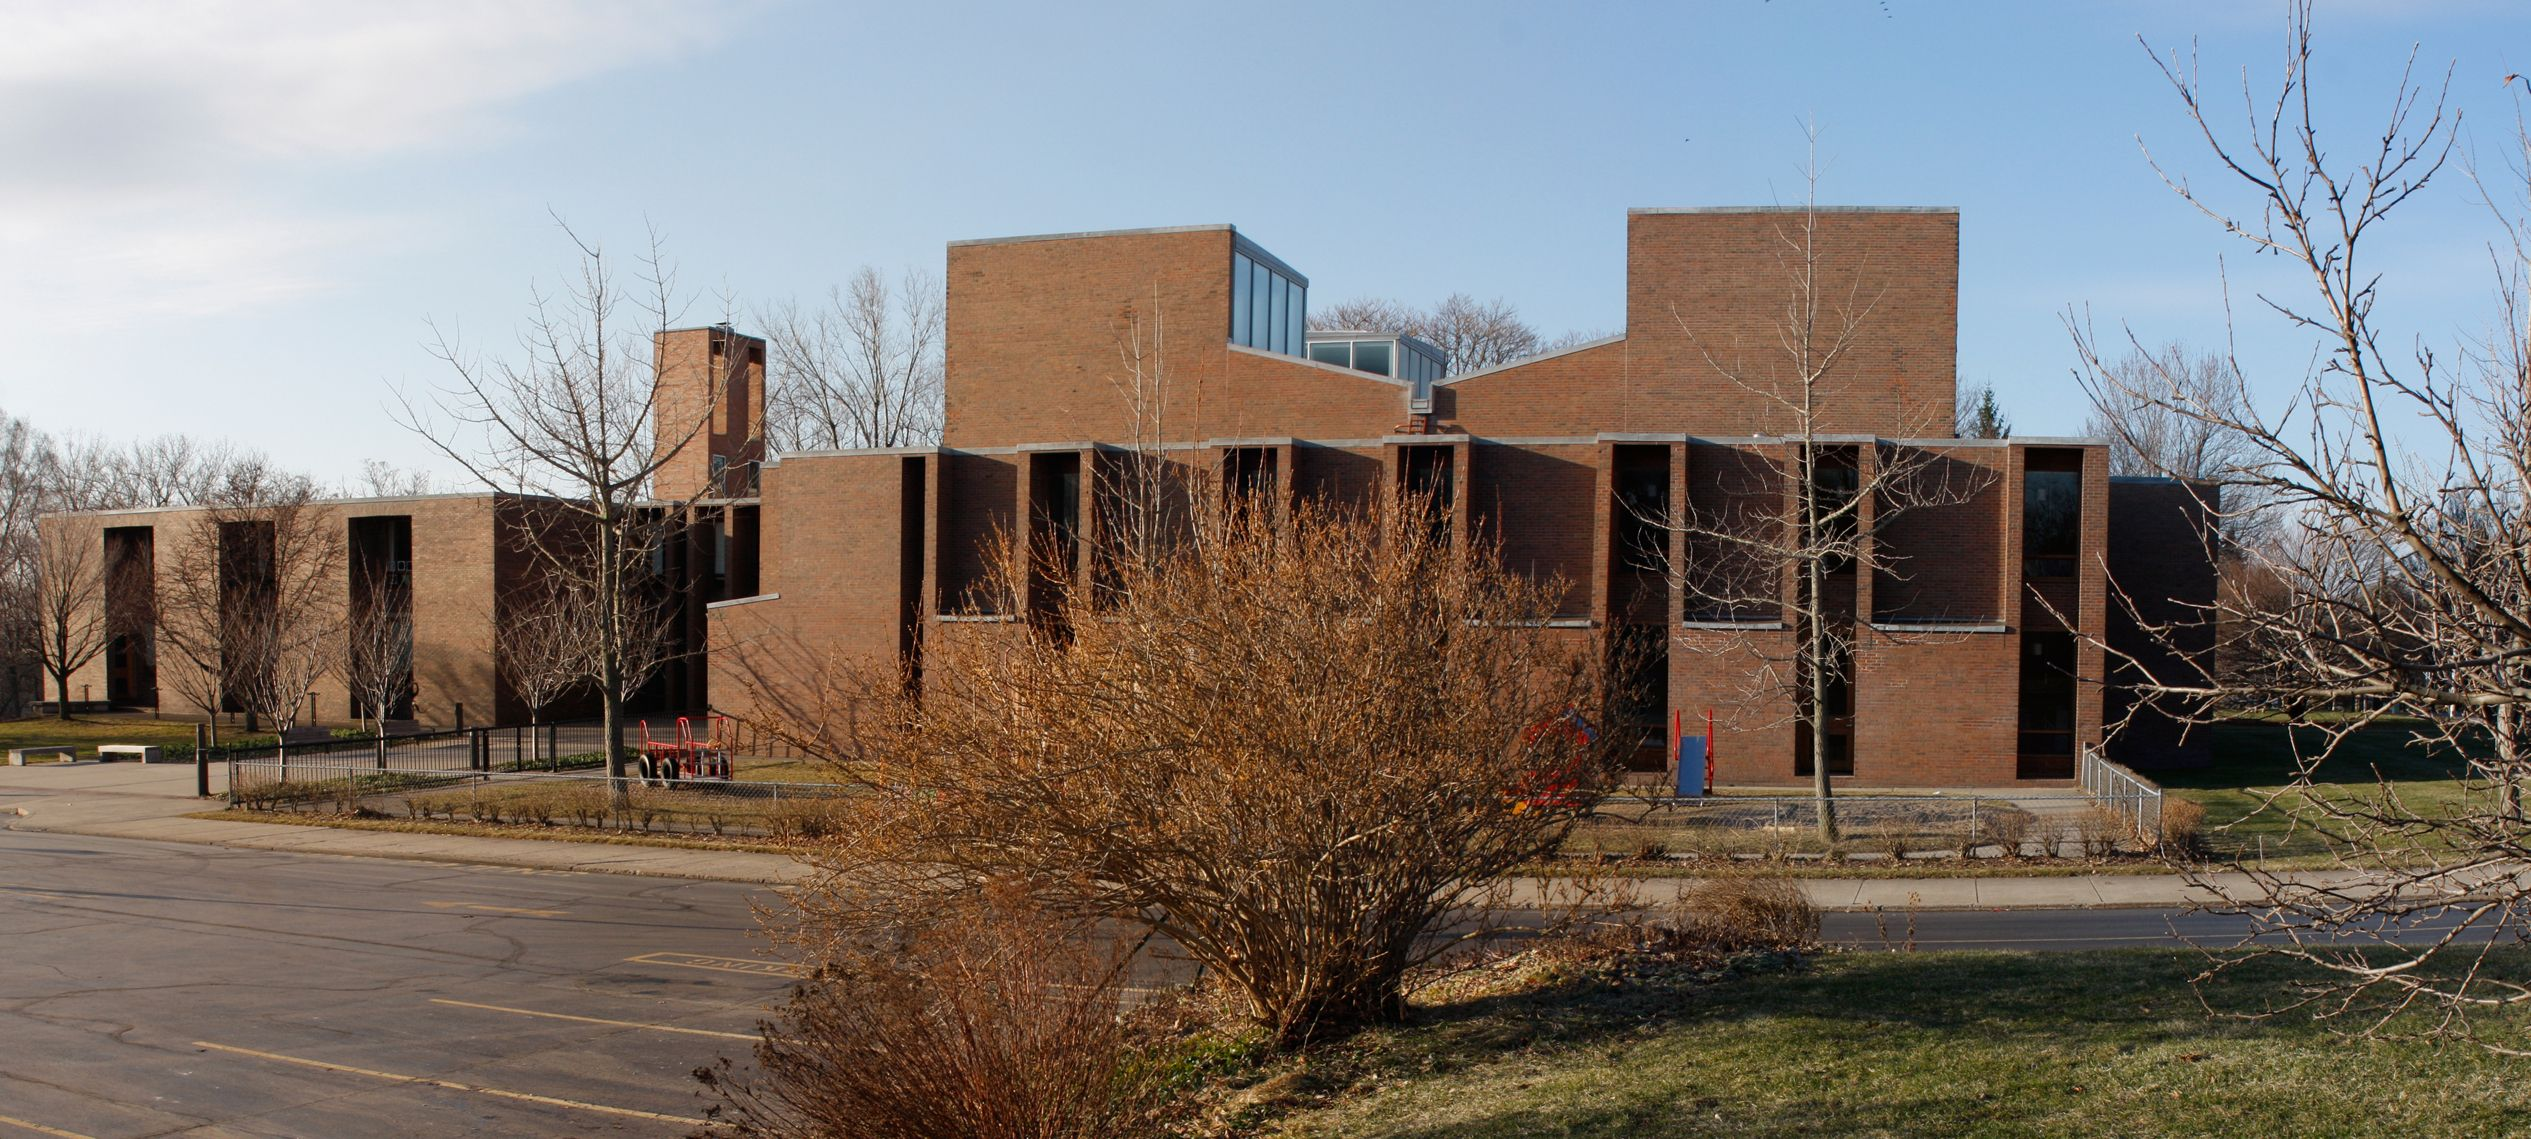 Nice Architects Rochester Ny #3: First Unitarian Church Of Rochester NY - Louis Kahn Architect 1962